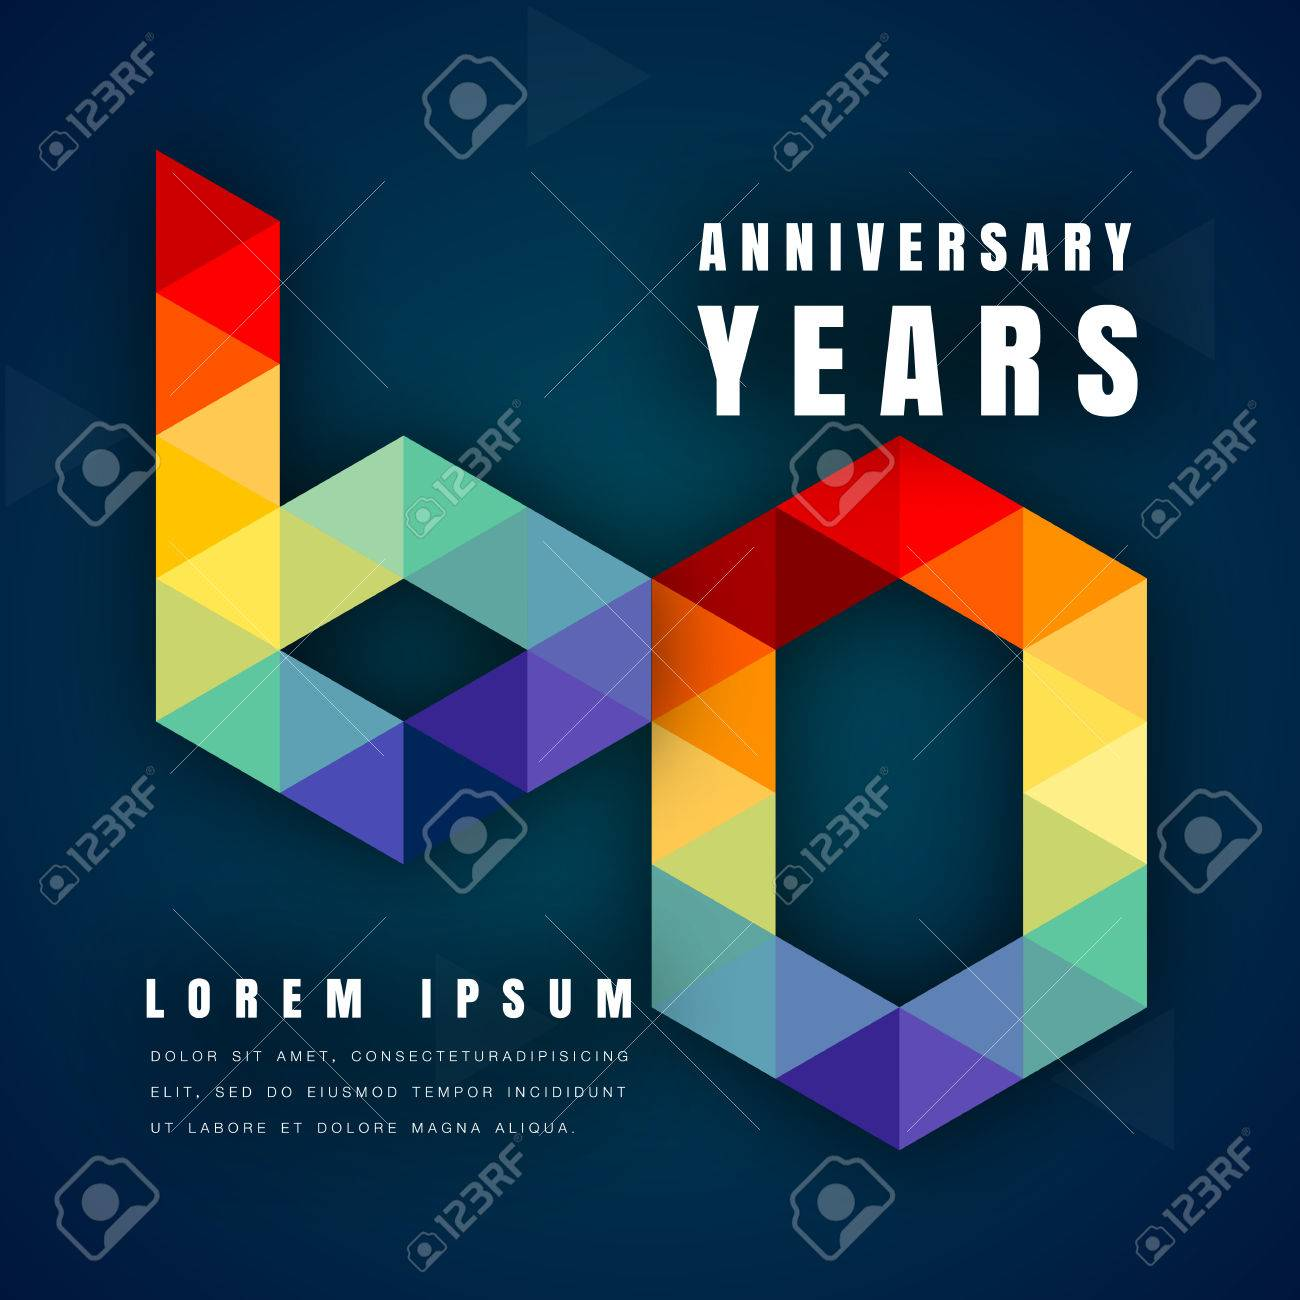 Anniversary emblems celebration logo, 60th birthday vector illustration, with dark blue background, modern geometric style and colorful polygonal design. 60 anniversary template design - 66734107